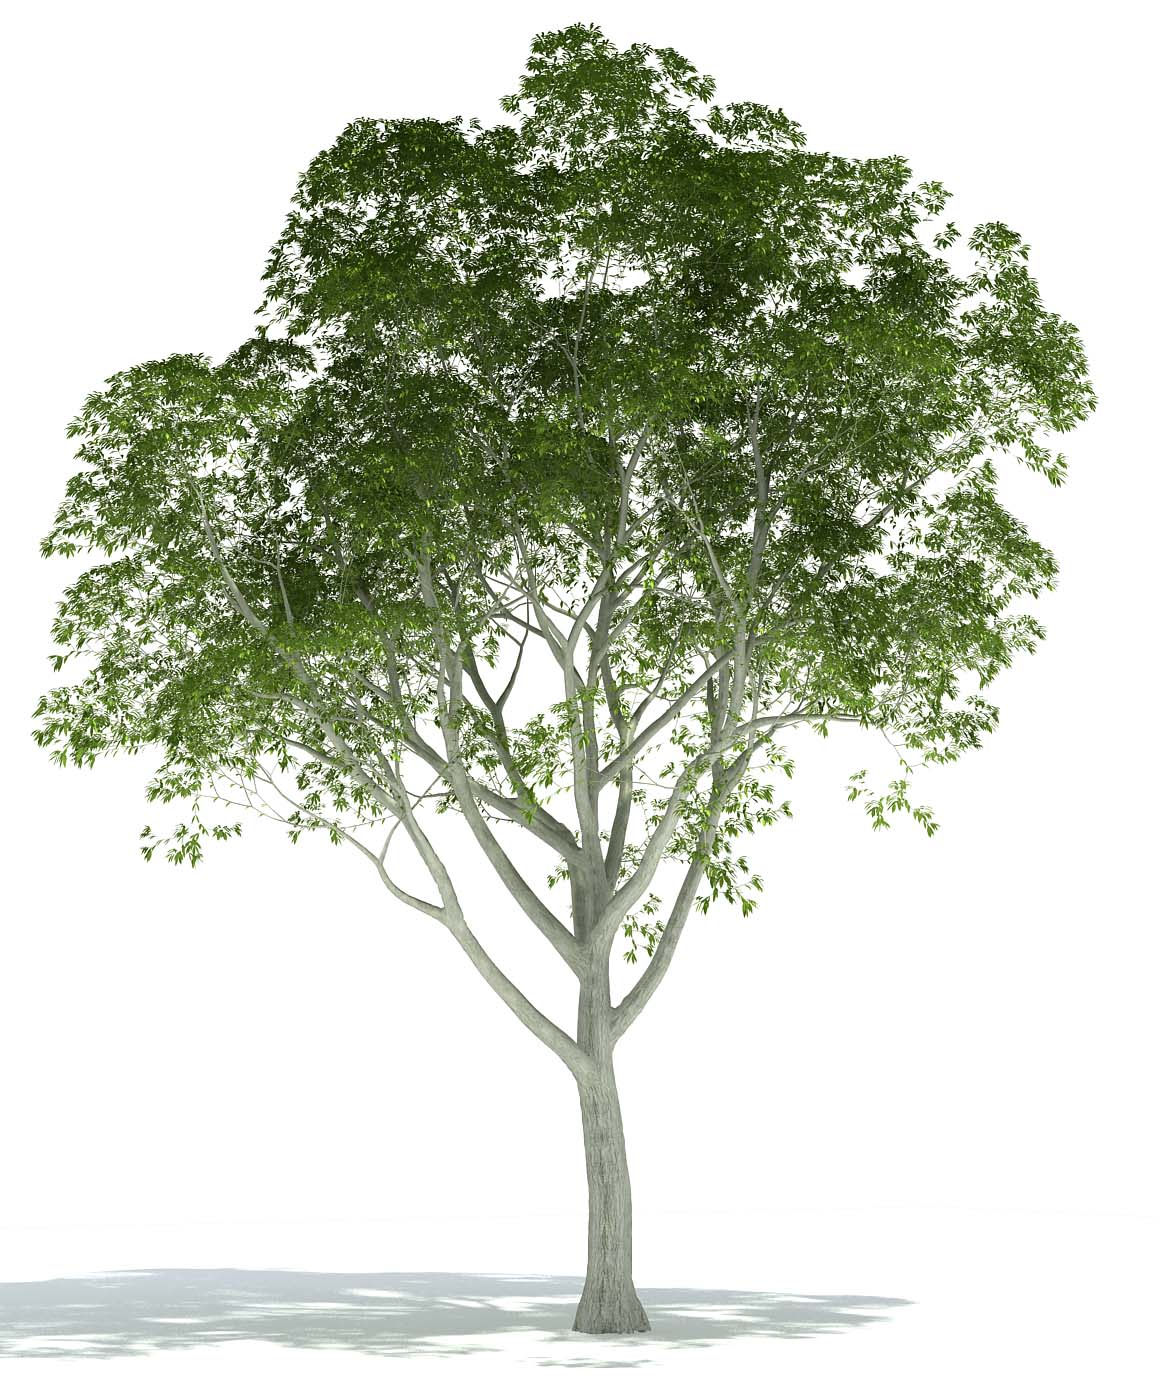 Photoshop Architectural Tree